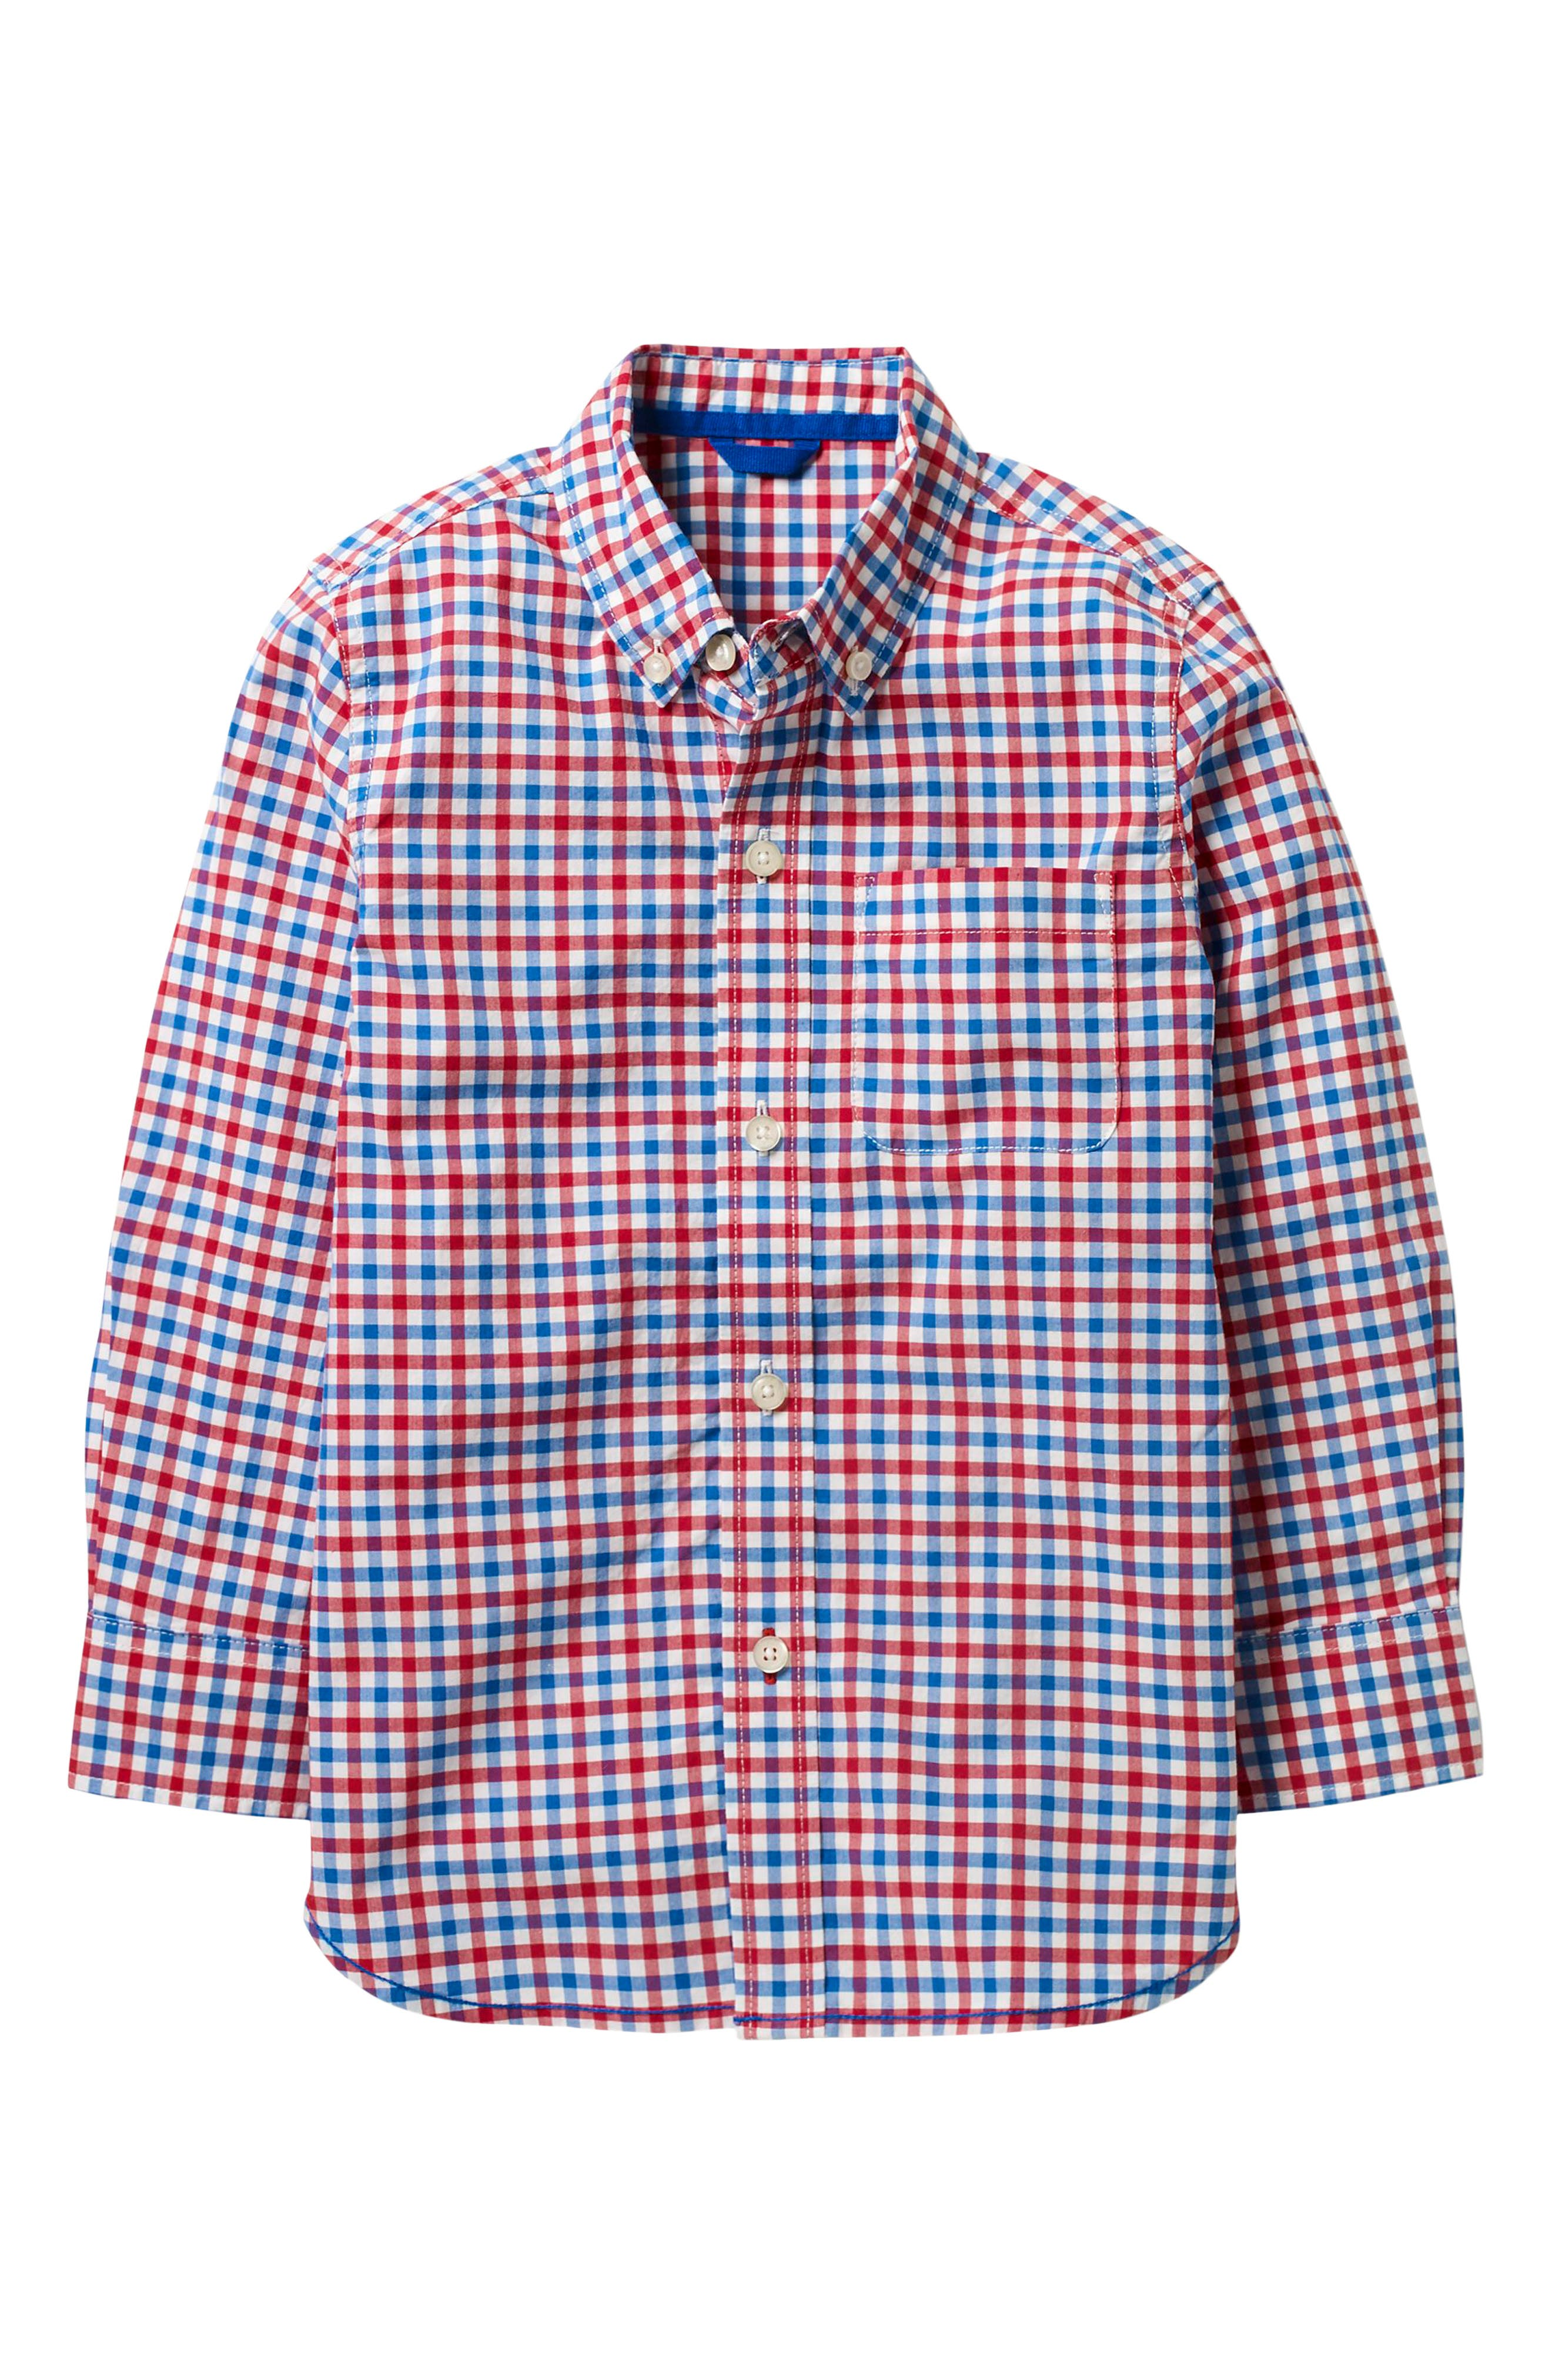 Laundered Gingham Woven Shirt,                             Main thumbnail 1, color,                             Soft Red/ Blue Multi-Gingham